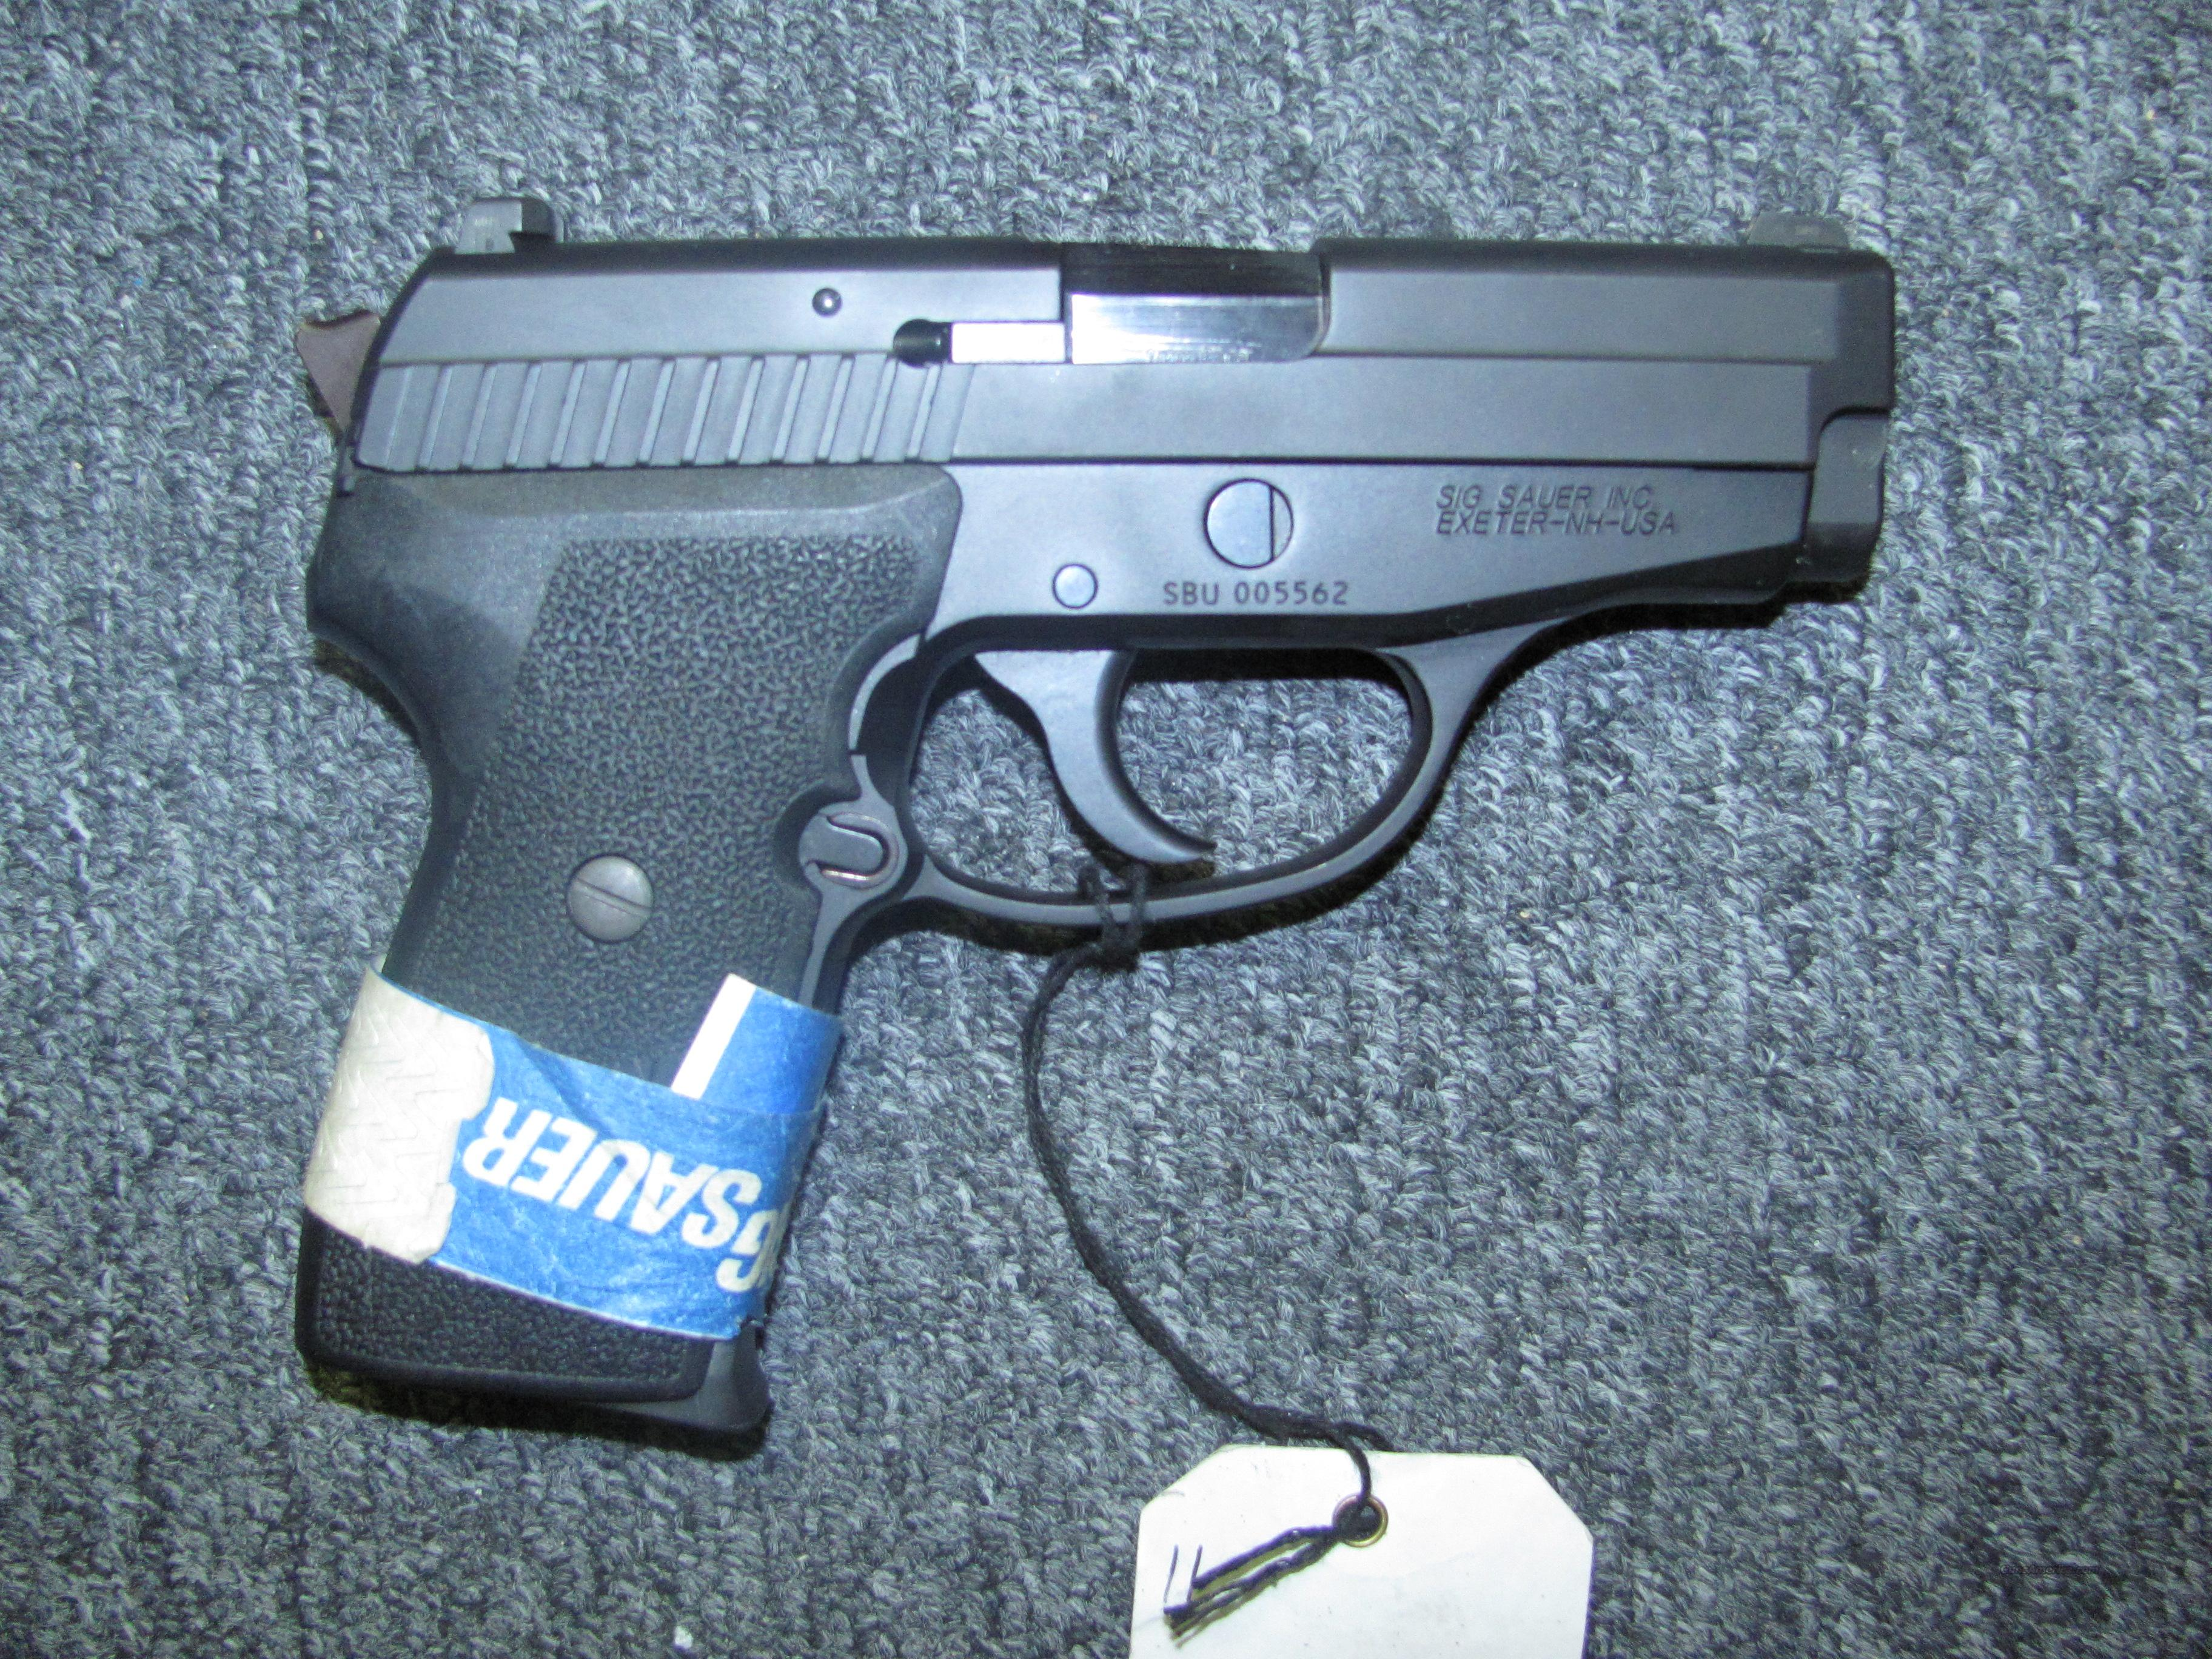 P239 w/night sights & 2 8 round mags.  Guns > Pistols > Sig - Sauer/Sigarms Pistols > P239